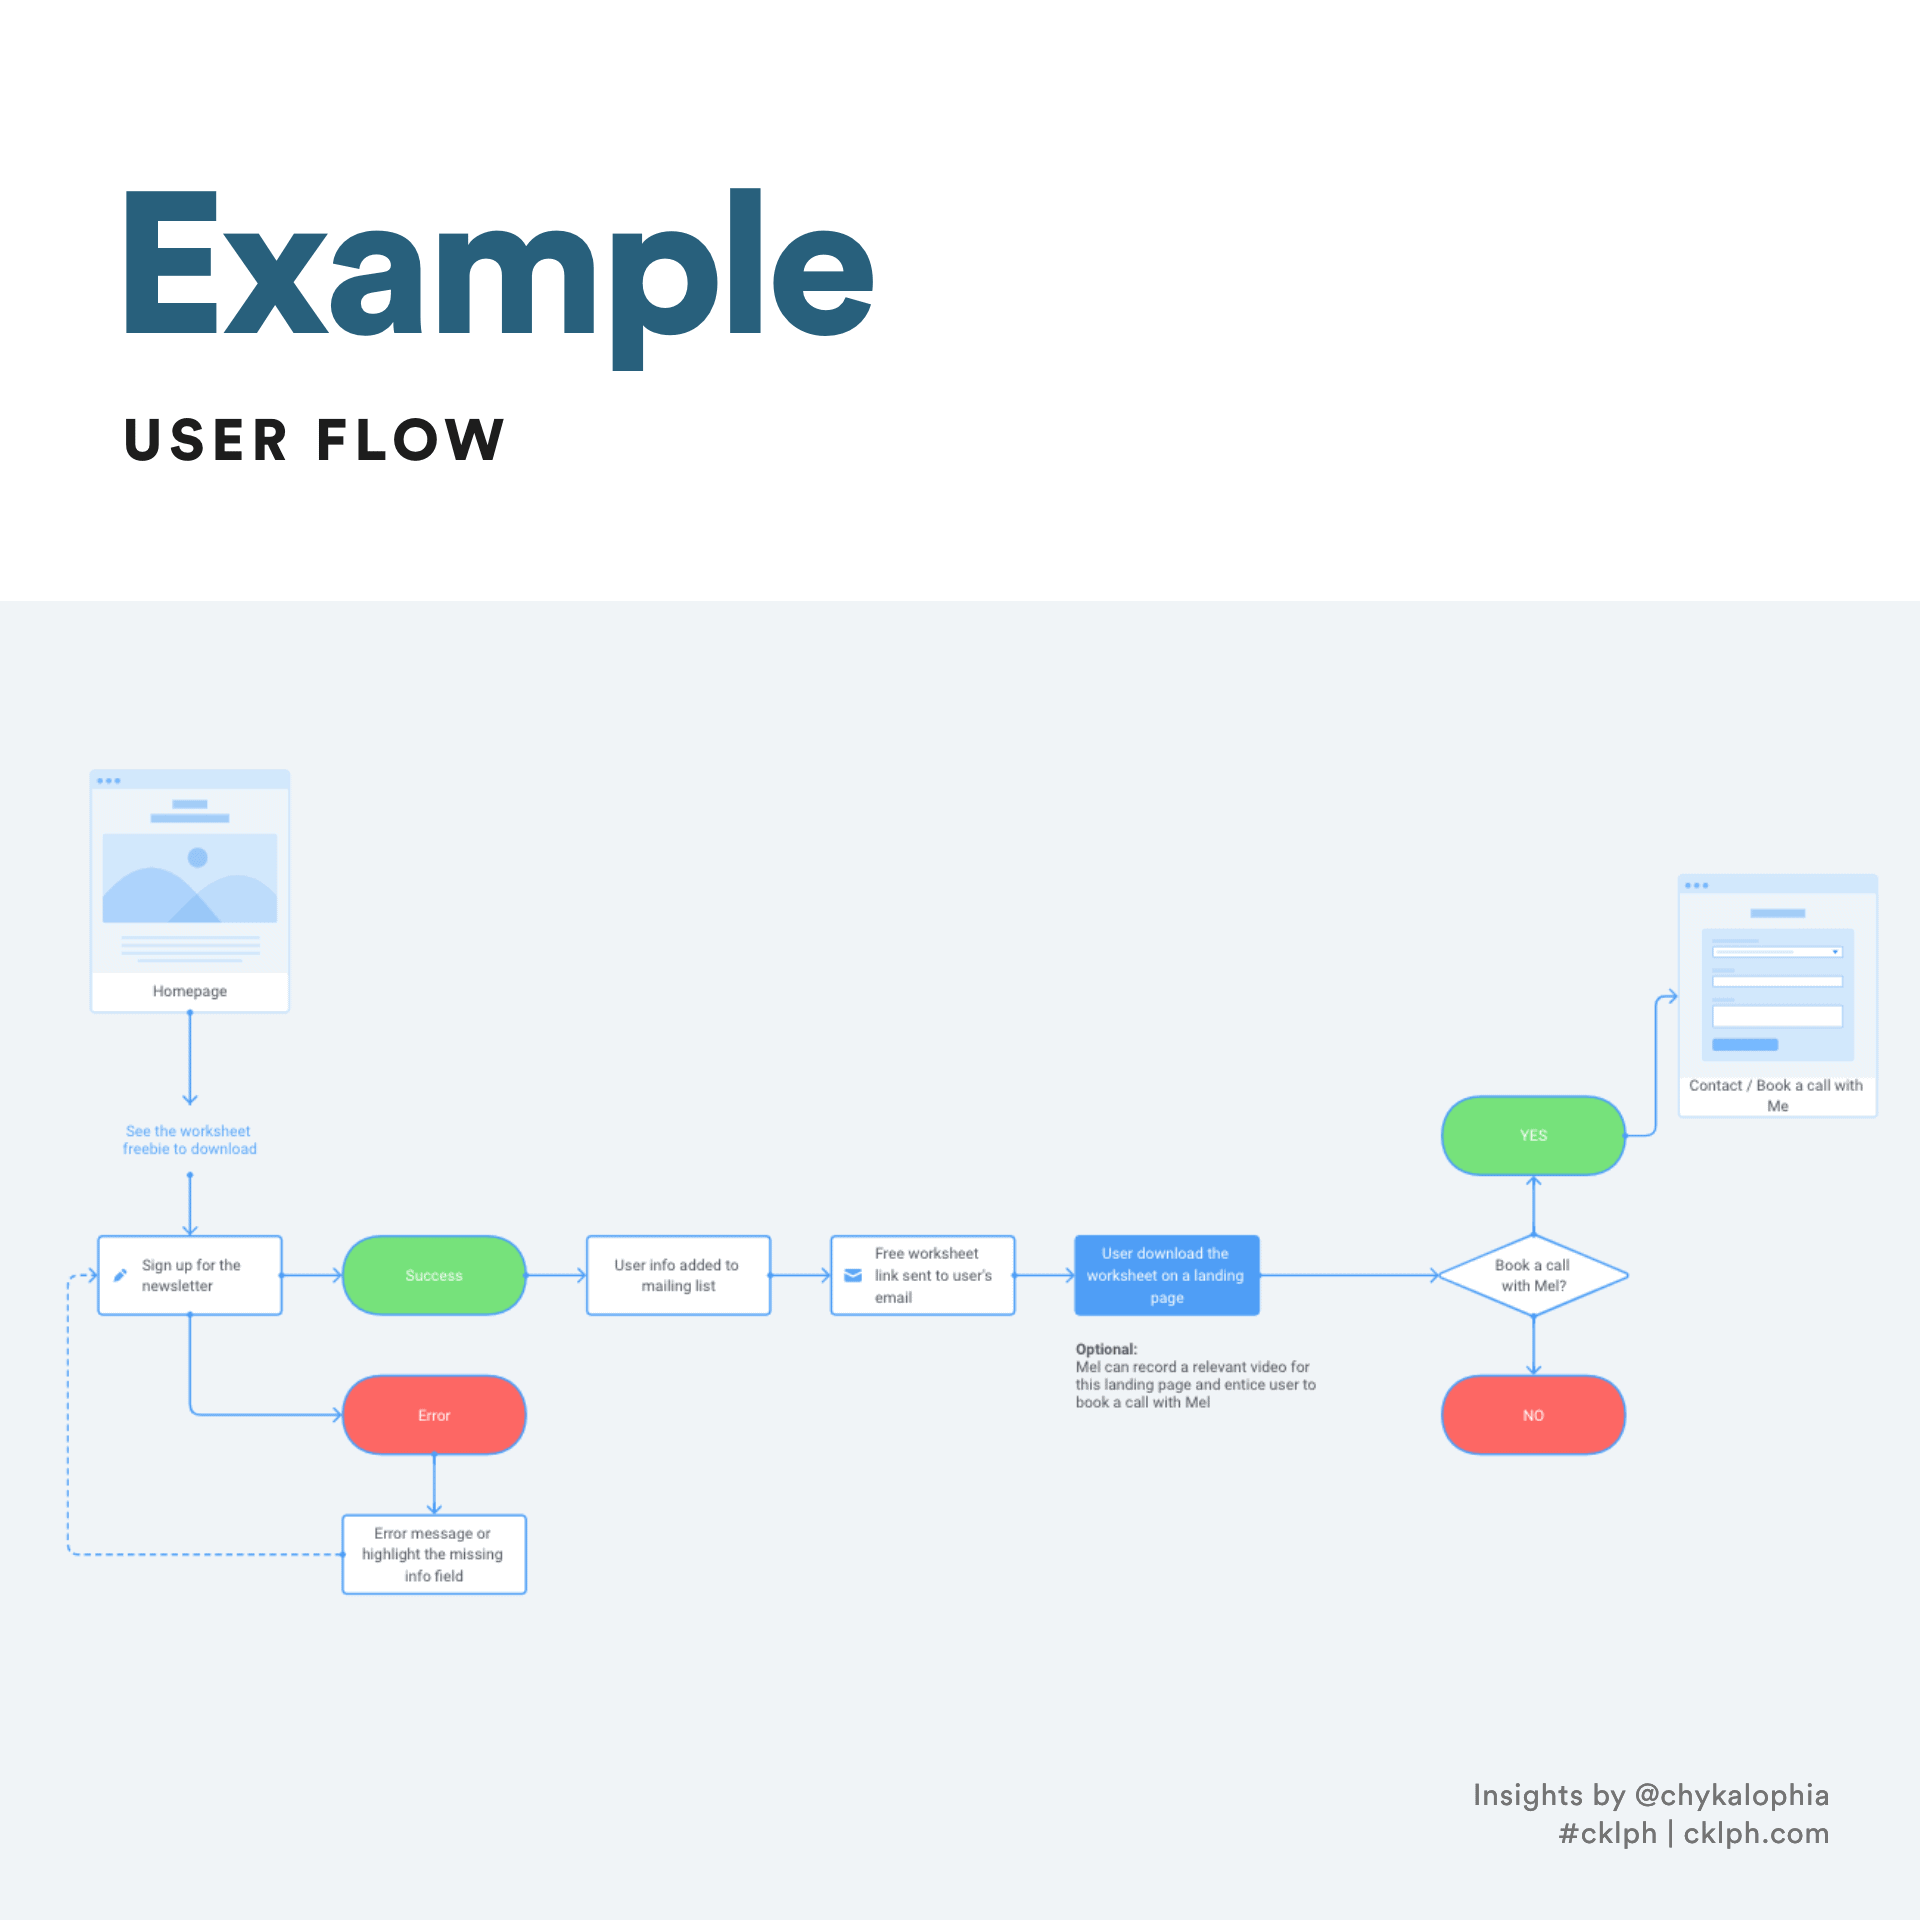 All You Need to Know and When to Use Sitemap vs. User Flow